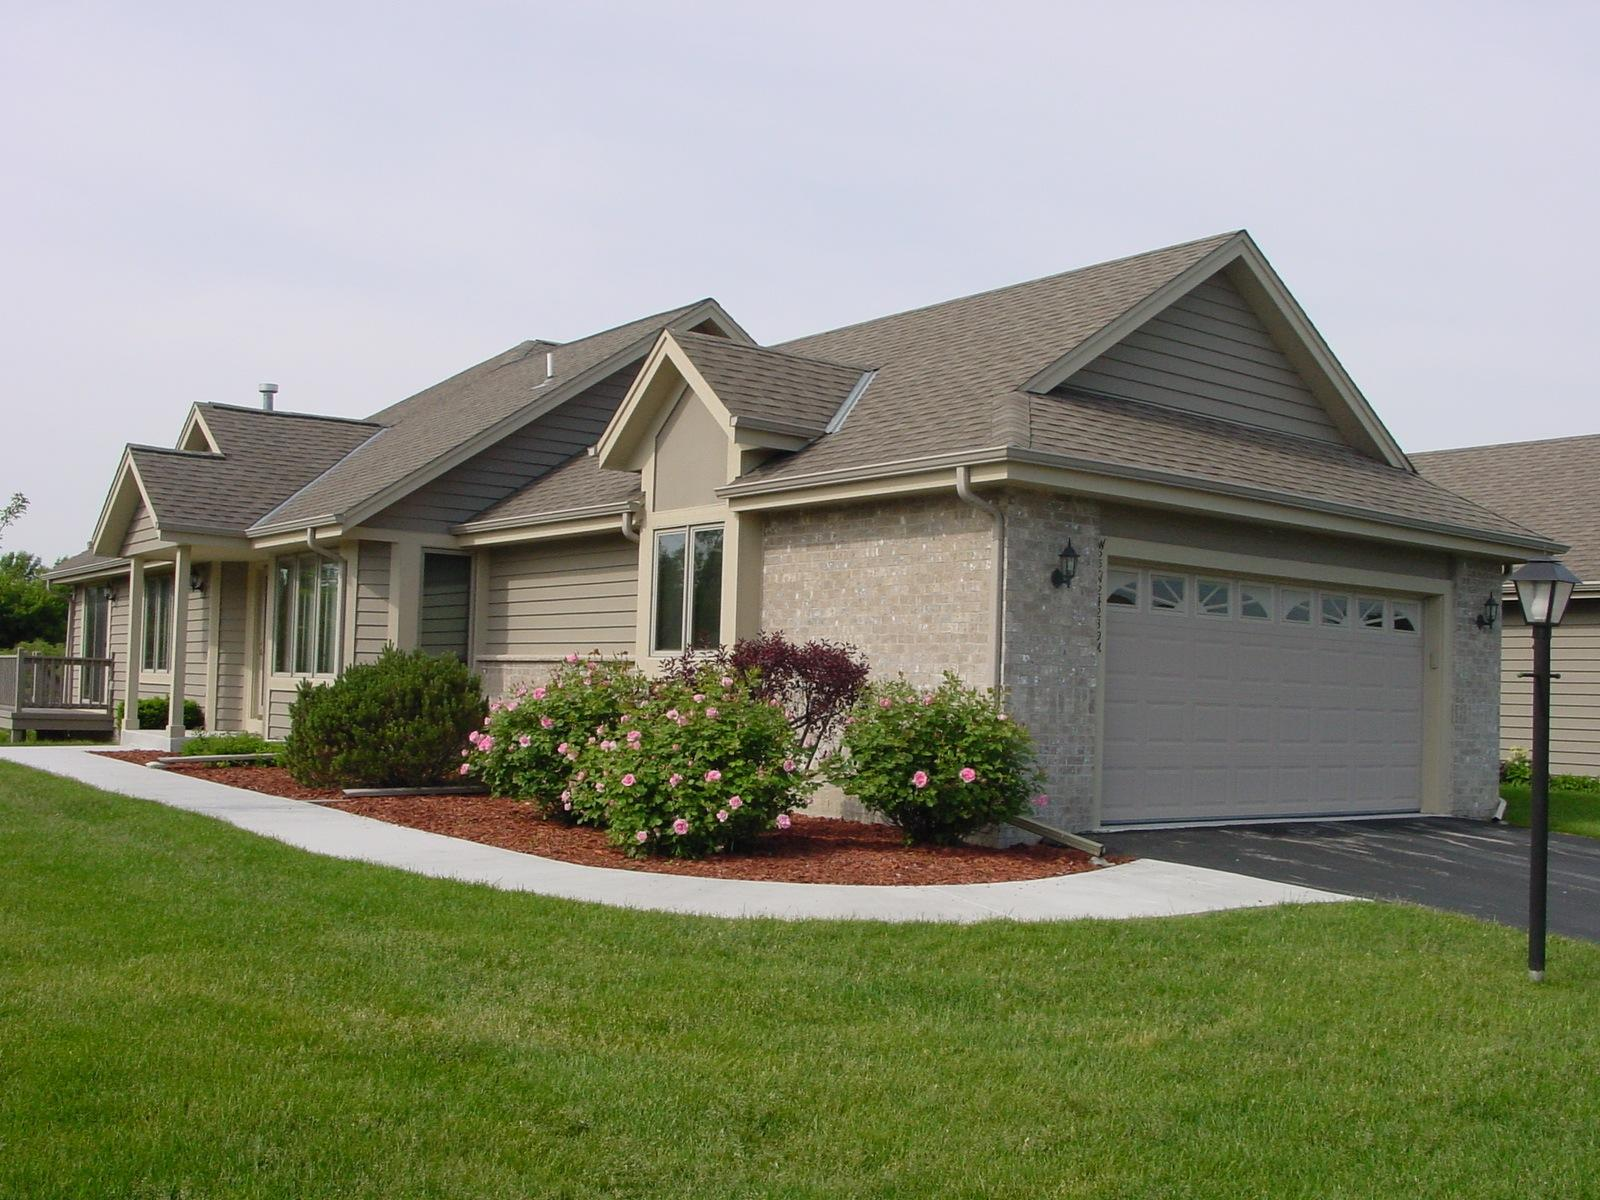 N22W24239 Range Line Rd, Pewaukee, Wisconsin 53072, 3 Bedrooms Bedrooms, 10 Rooms Rooms,2 BathroomsBathrooms,Condominiums,For Sale,Range Line Rd,1,1614653